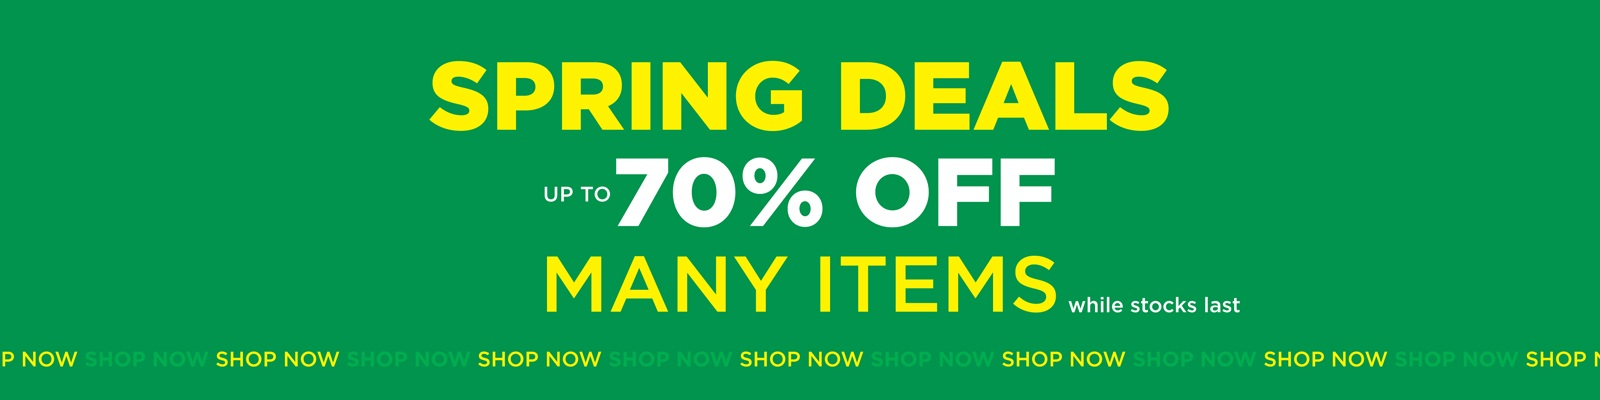 Spring Deals | Up To 70% Off